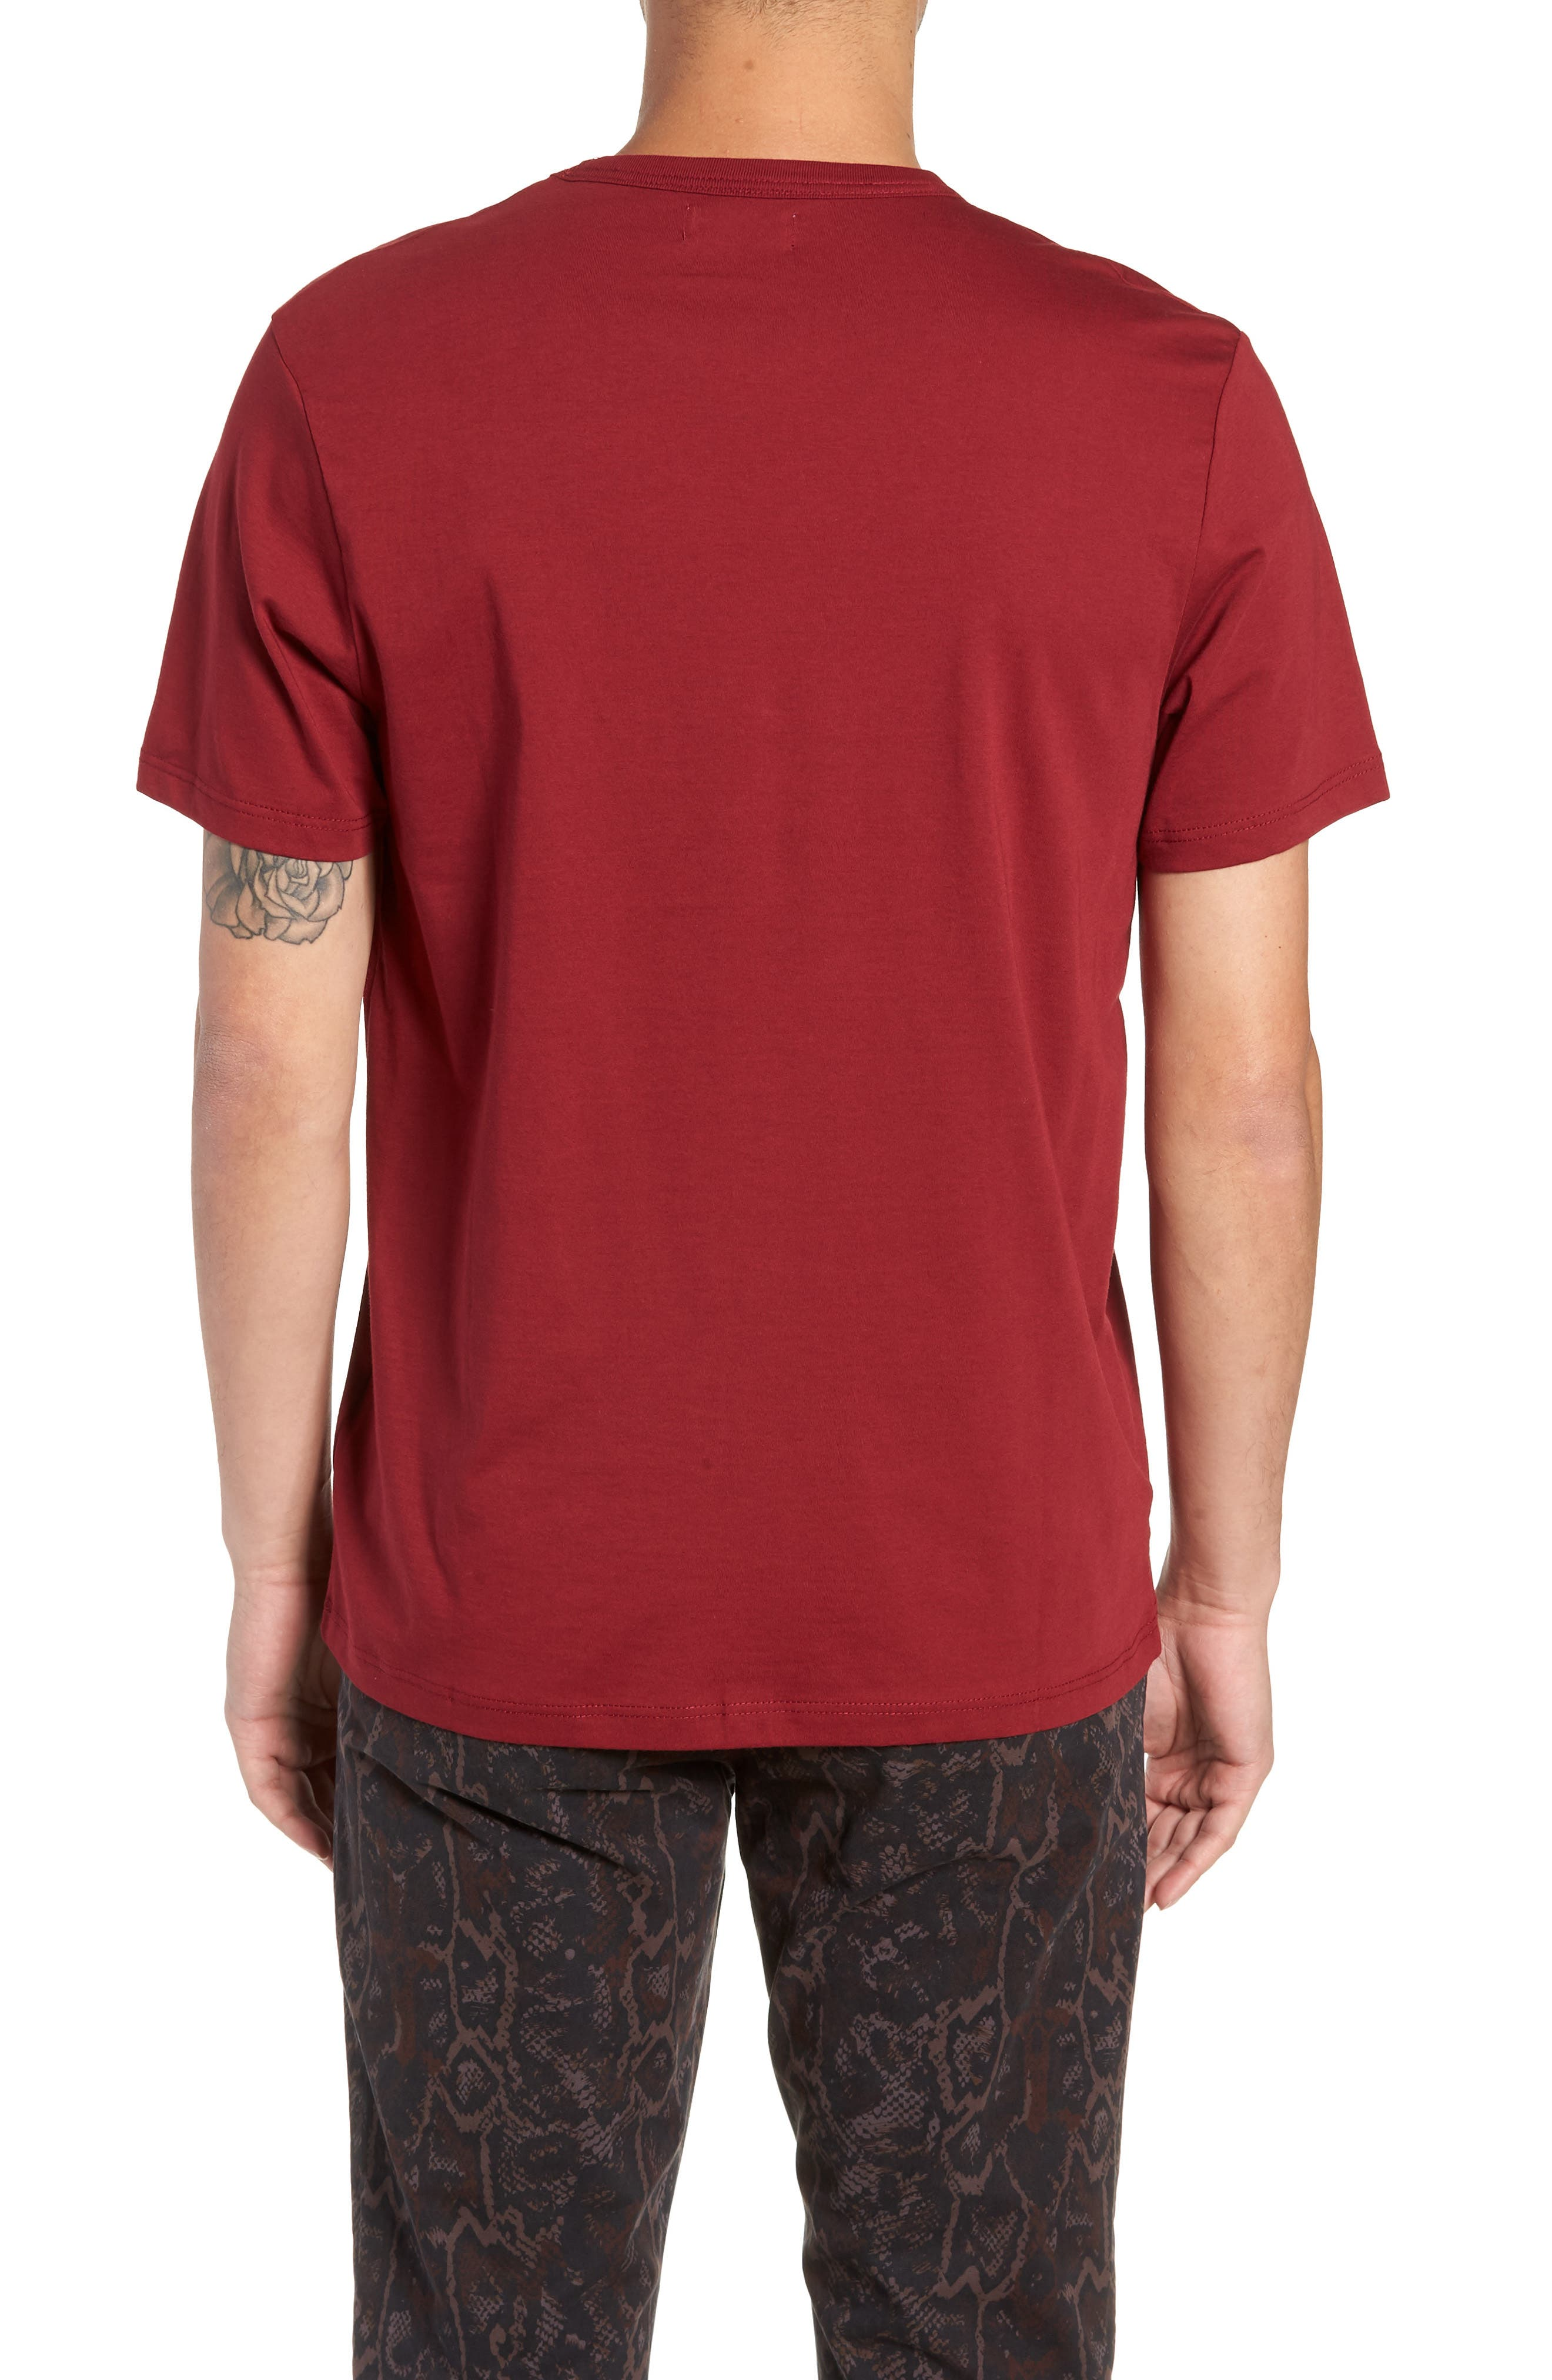 Bound Classic Crew T-Shirt,                             Alternate thumbnail 2, color,                             600